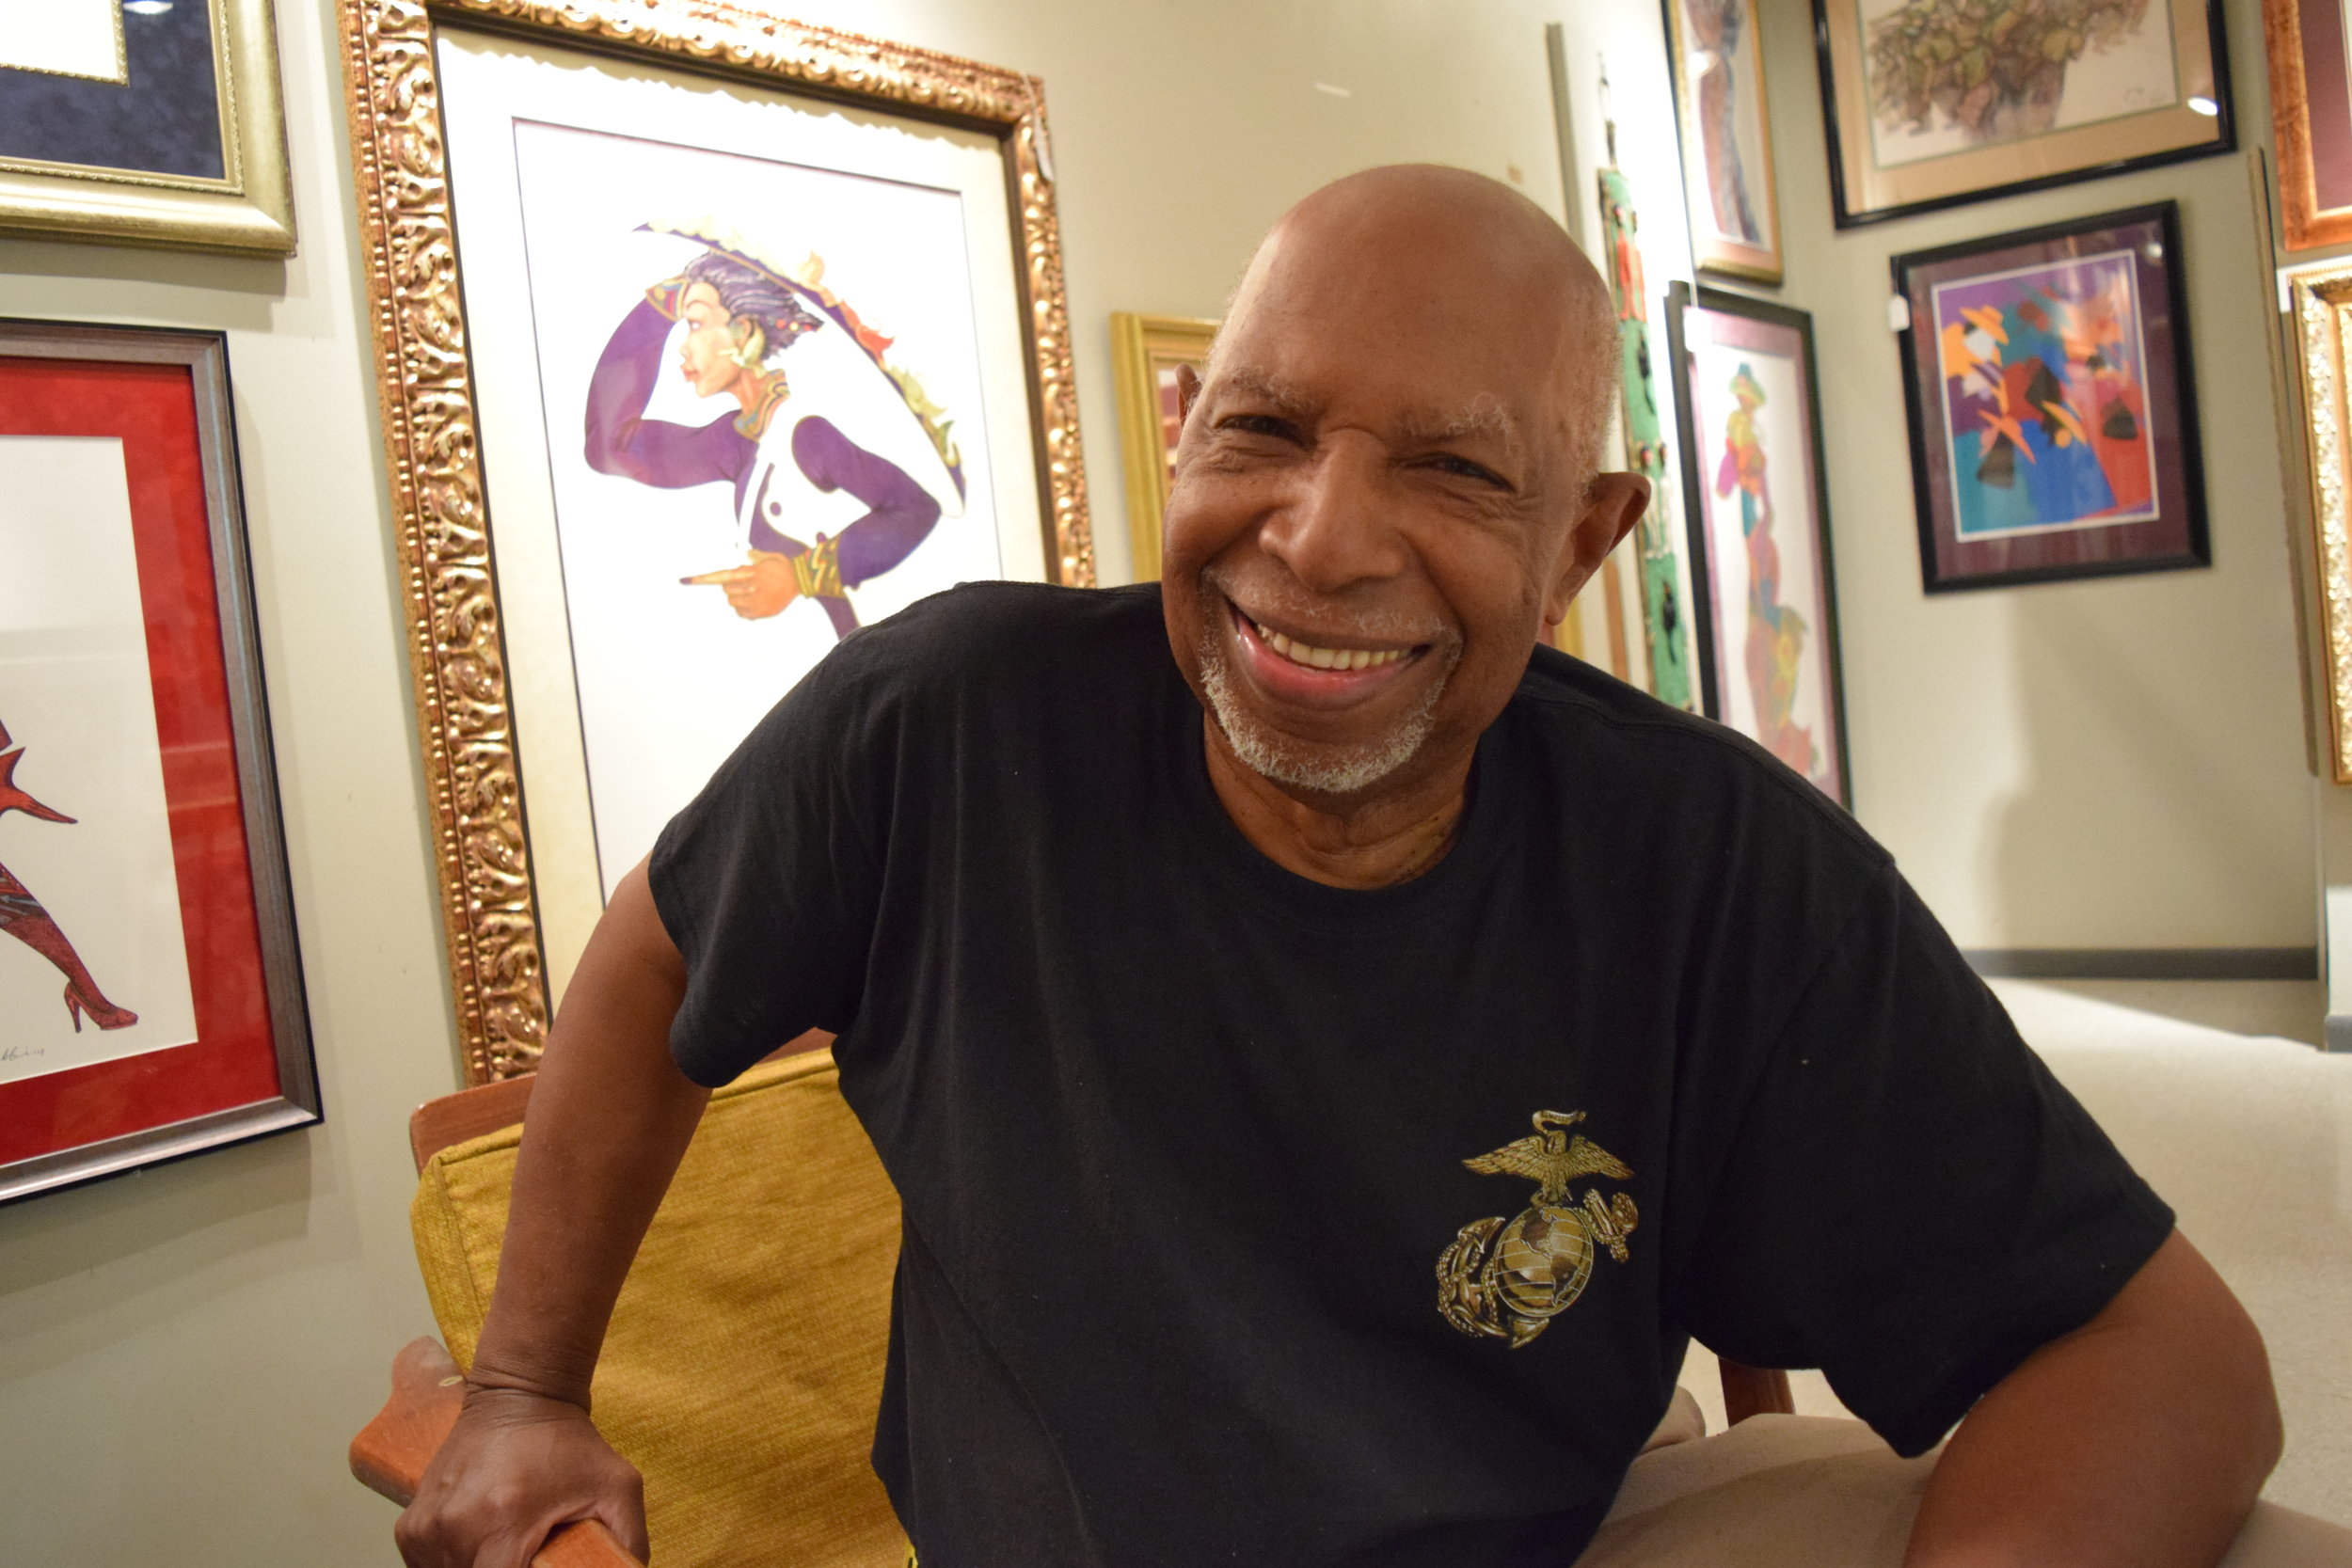 """Lawrence Calvin D'Antignac (aka """"Dan"""")   Owner,The Woodshop   """"I've owned this business roughly 42 years. Most of the art, I guess about 50/50 comes from the United States and Africa and the Caribbean. [I got into this business because] I needed a job. I'm a cabinet maker, a self-taught cabinet maker. I opened this shop up to make furniture. That's the name of it, 'The Woodshop'. I had three boys that were in the Boy Scouts. They had a project to do one time. The Scoutorama was coming to Chicago, and the theme of it was 'your hobbies'. At that time, Hank Aaron was breathing down Babe Ruth's back to break that record, and the boys were collecting sports' pictures. That was their hobby, and they wanted to display their sports' pictures. They didn't know how they would display it. They said they would thumbtack them to the wall. One of my sons said, 'Why don't we put them in frames?' I said that was a good idea. They had about 150 pictures of basketball, football, and baseball. I said, 'Okay, I'll go to the store and get some frames.' So I went to Walgreens to get 7 x 14 inch frames, and they was four dollars and something a piece. So, 150 times four dollars and something a piece, I decided I wasn't going to pay that kind of money on a one shot situation (laughs). My youngest son said, 'We can make the frames.' I said, 'That's a good idea.' So, I went to see if I could get some stock to make the frames, and the only place I knew to go was a frame shop on the North Side. I went to about two or three of them, and they wouldn't sell me the stock. They wanted me to buy the frames from them. So, I went to one place and asked the guy, and he said, 'No, we don't sell the stock.' There was a Black guy that worked there. He came out the back door and said, 'Hey, I know where you can get some stock. You go over here on Halsted and something, something.' I went over there and the man sold me everything I wanted. And then he told me where to get the glass from…So I got the glass, """